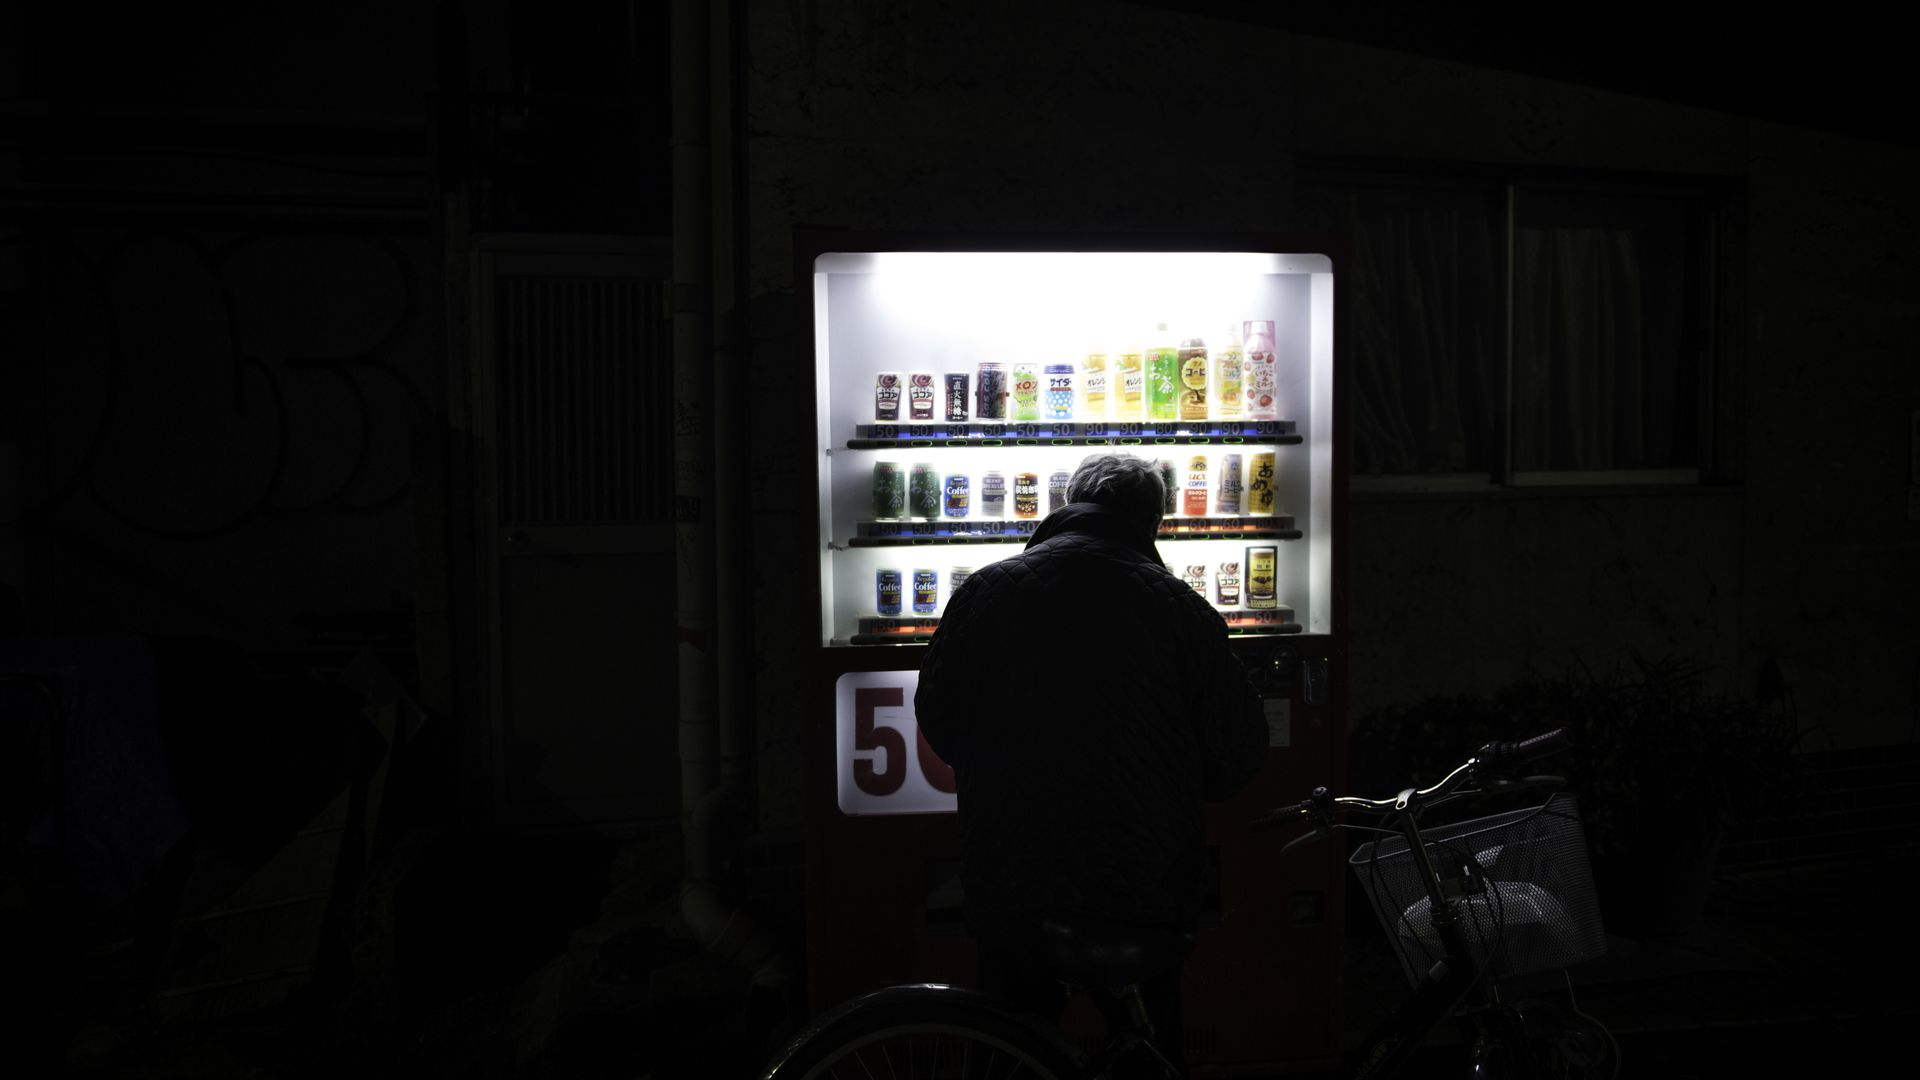 A man silhouetted in front of a vending machine.